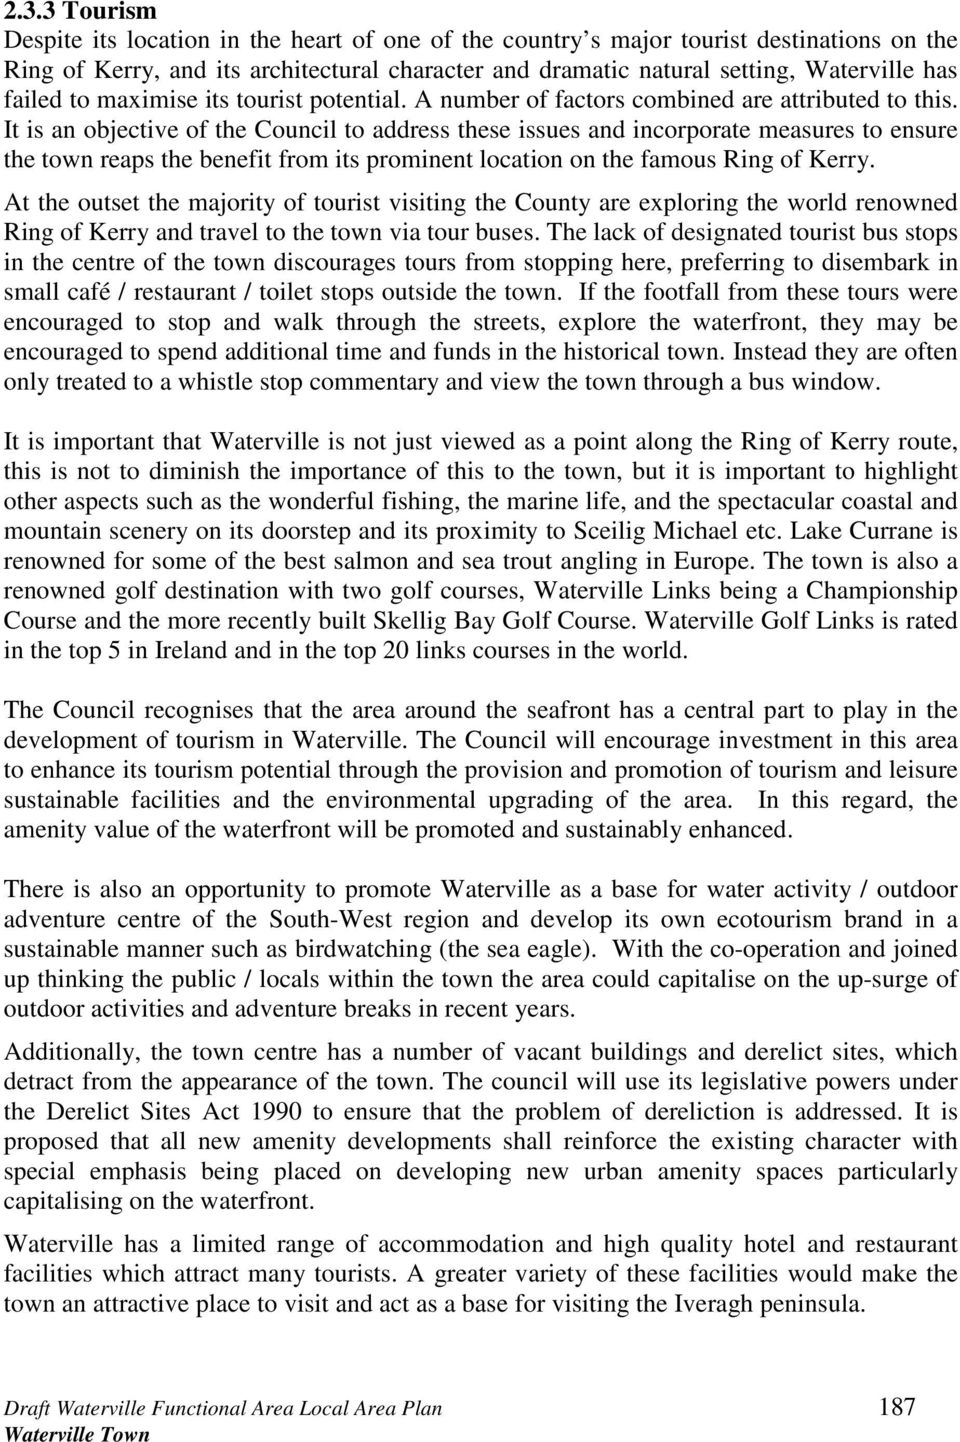 It is an objective of the Council to address these issues and incorporate measures to ensure the town reaps the benefit from its prominent location on the famous Ring of Kerry.